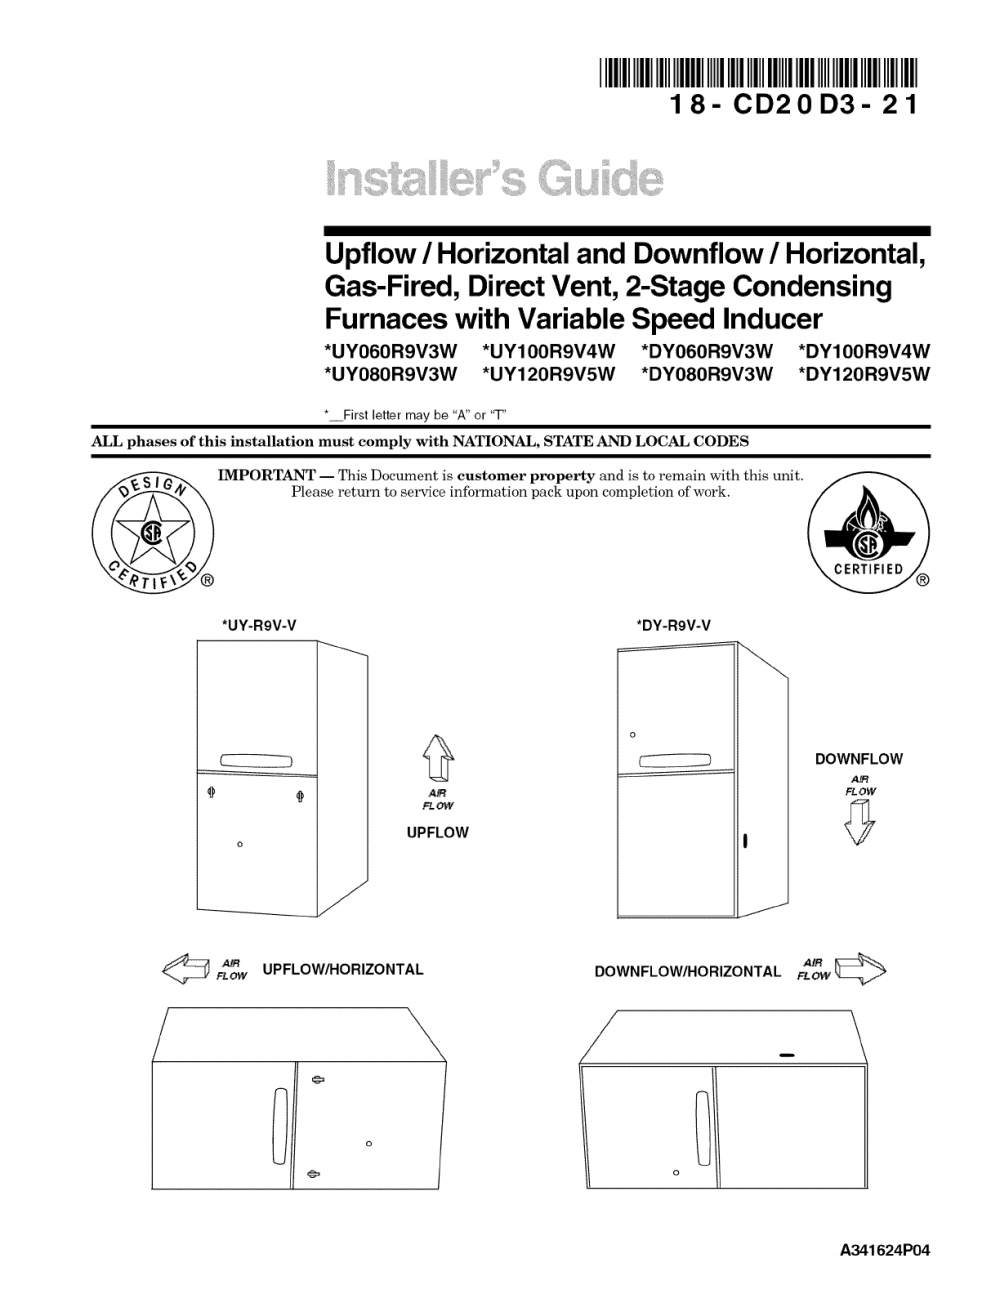 medium resolution of a ground joint union and a manual gas shutoff valve should be installed ahead of the unit heater controls to permit servicing download trane furnace pdf